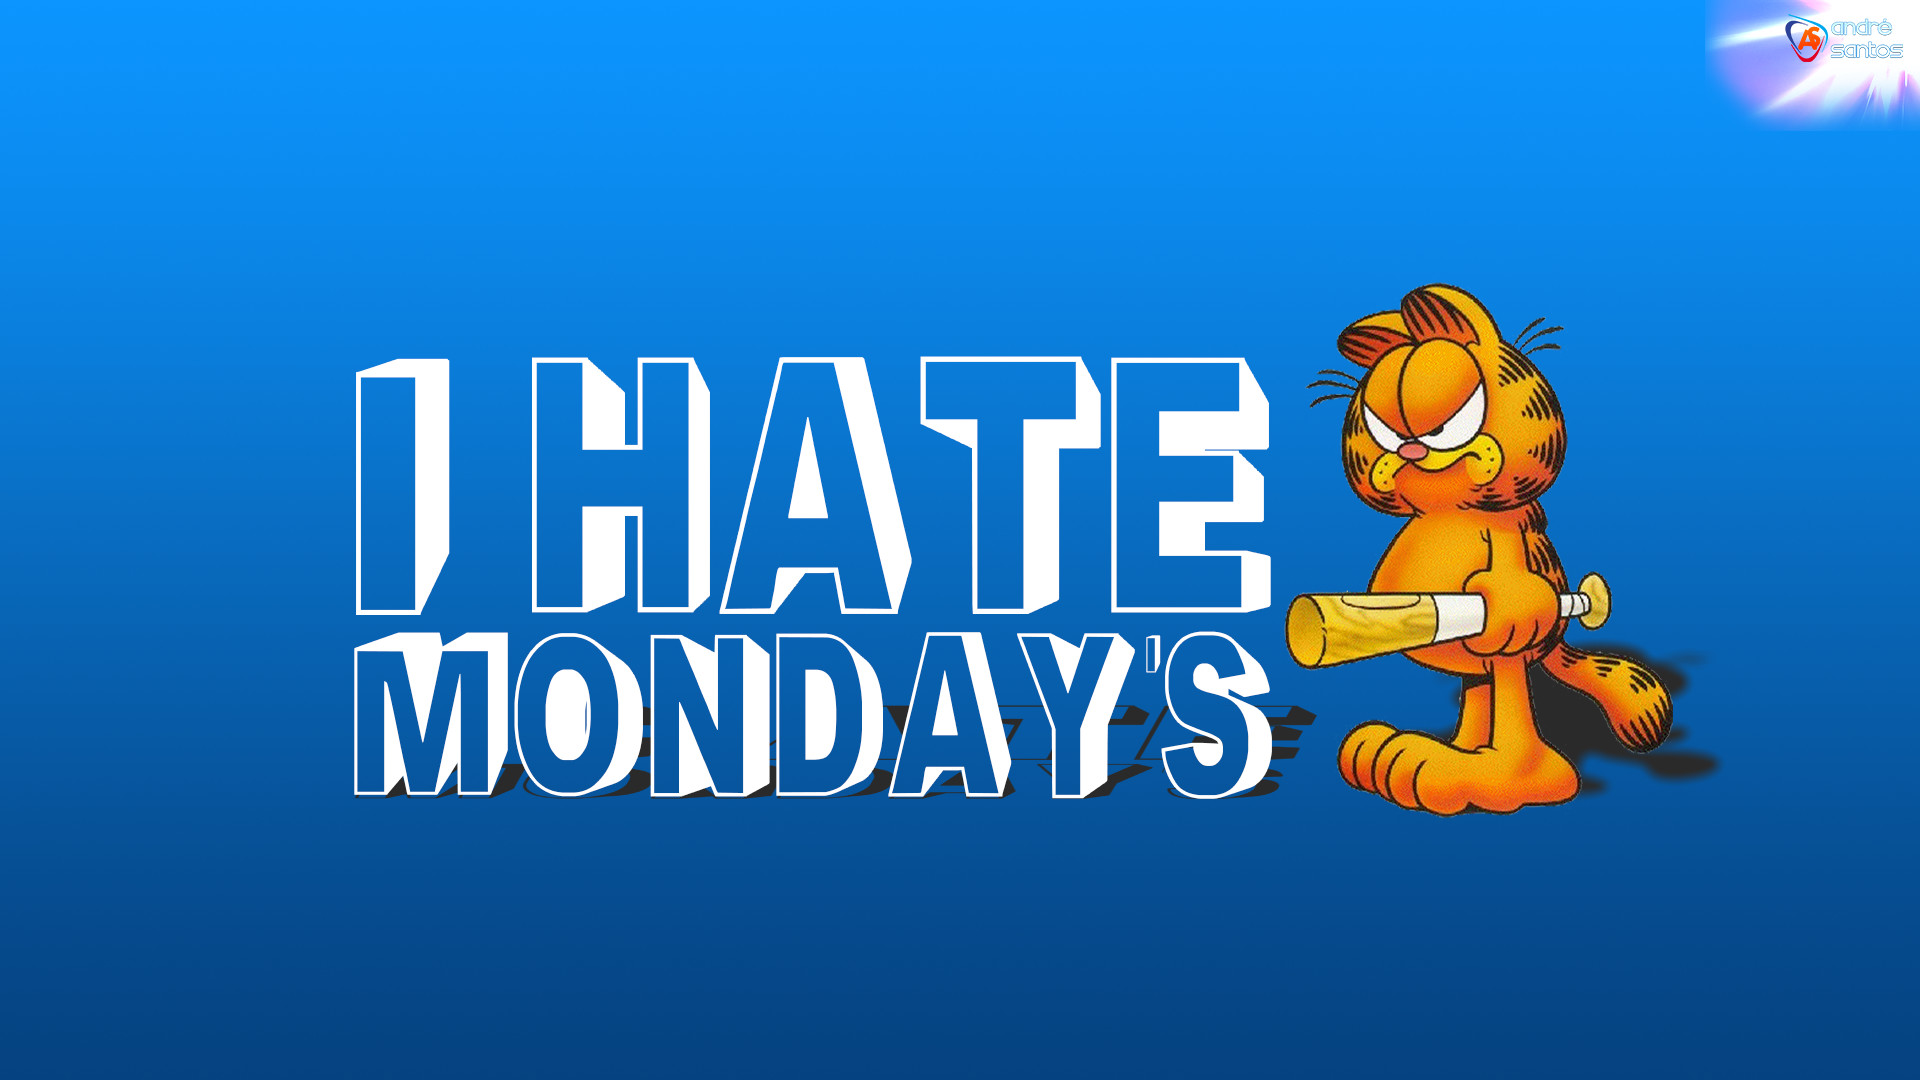 Res: 1920x1080, i hate mondays wallpaper